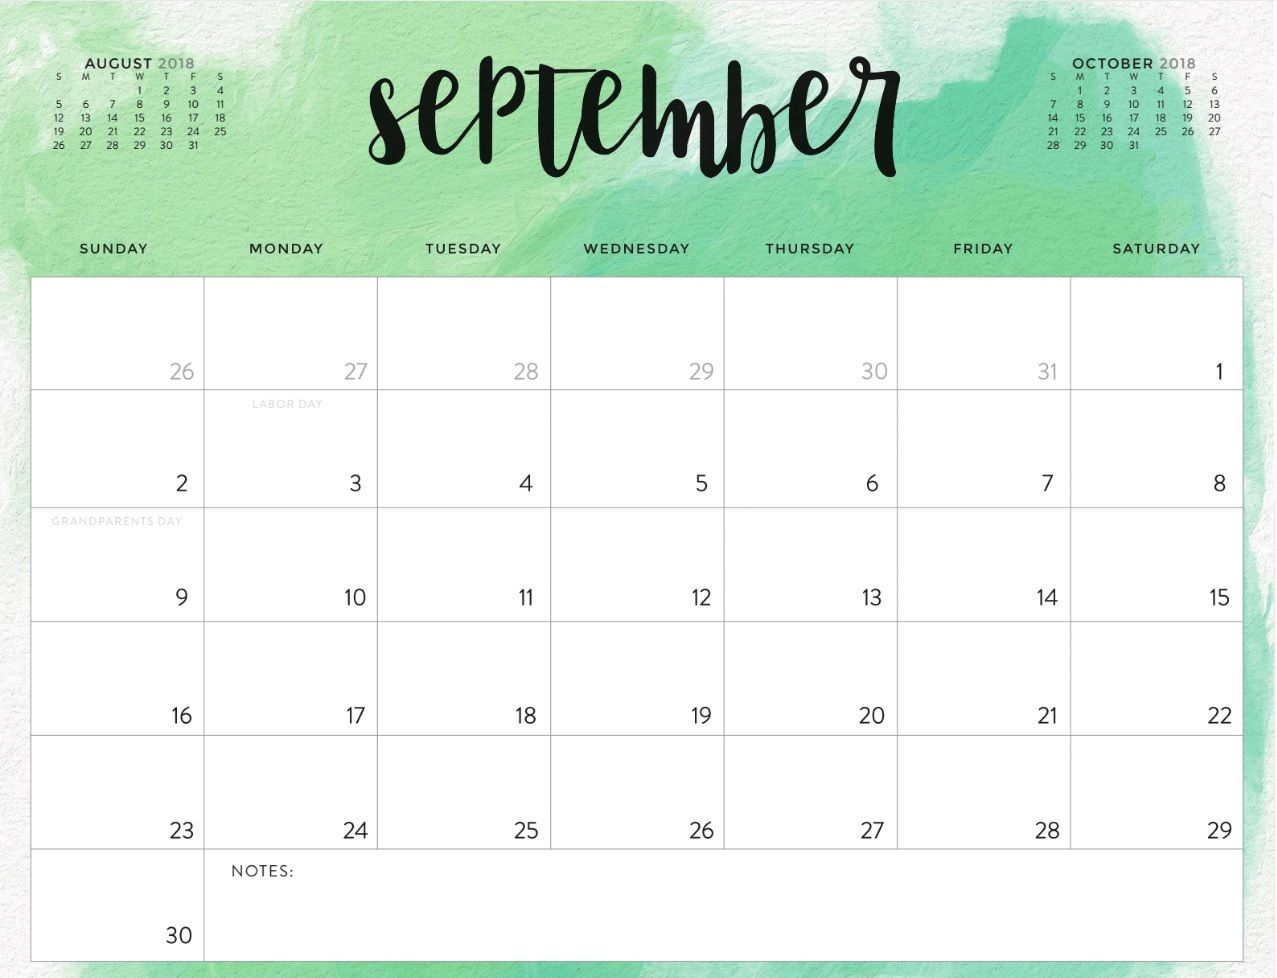 picture relating to Waterproof Printable Calendar called September 2018 Calendar Printable Water resistant Printable